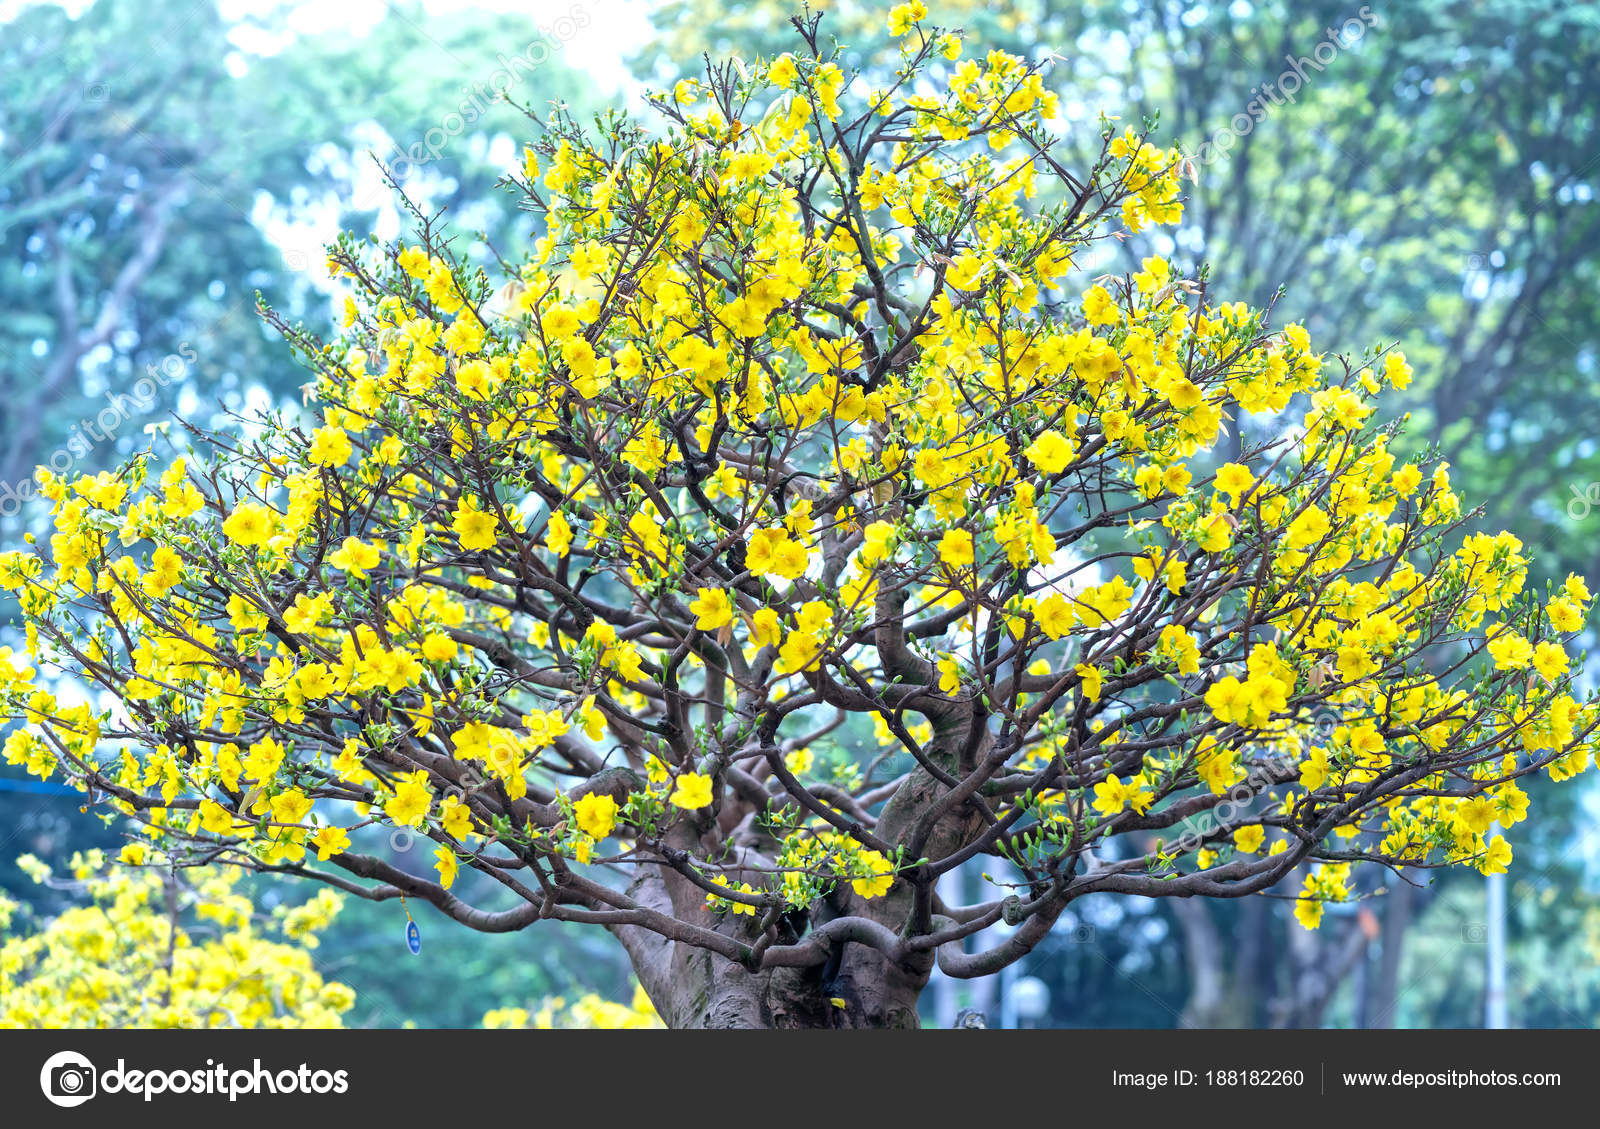 Apricot flowers blooming vietnam lunar new year yellow blooming apricot flowers blooming in vietnam lunar new year with yellow blooming fragrant petals signaling spring has come this is the symbolic flower for good luck mightylinksfo